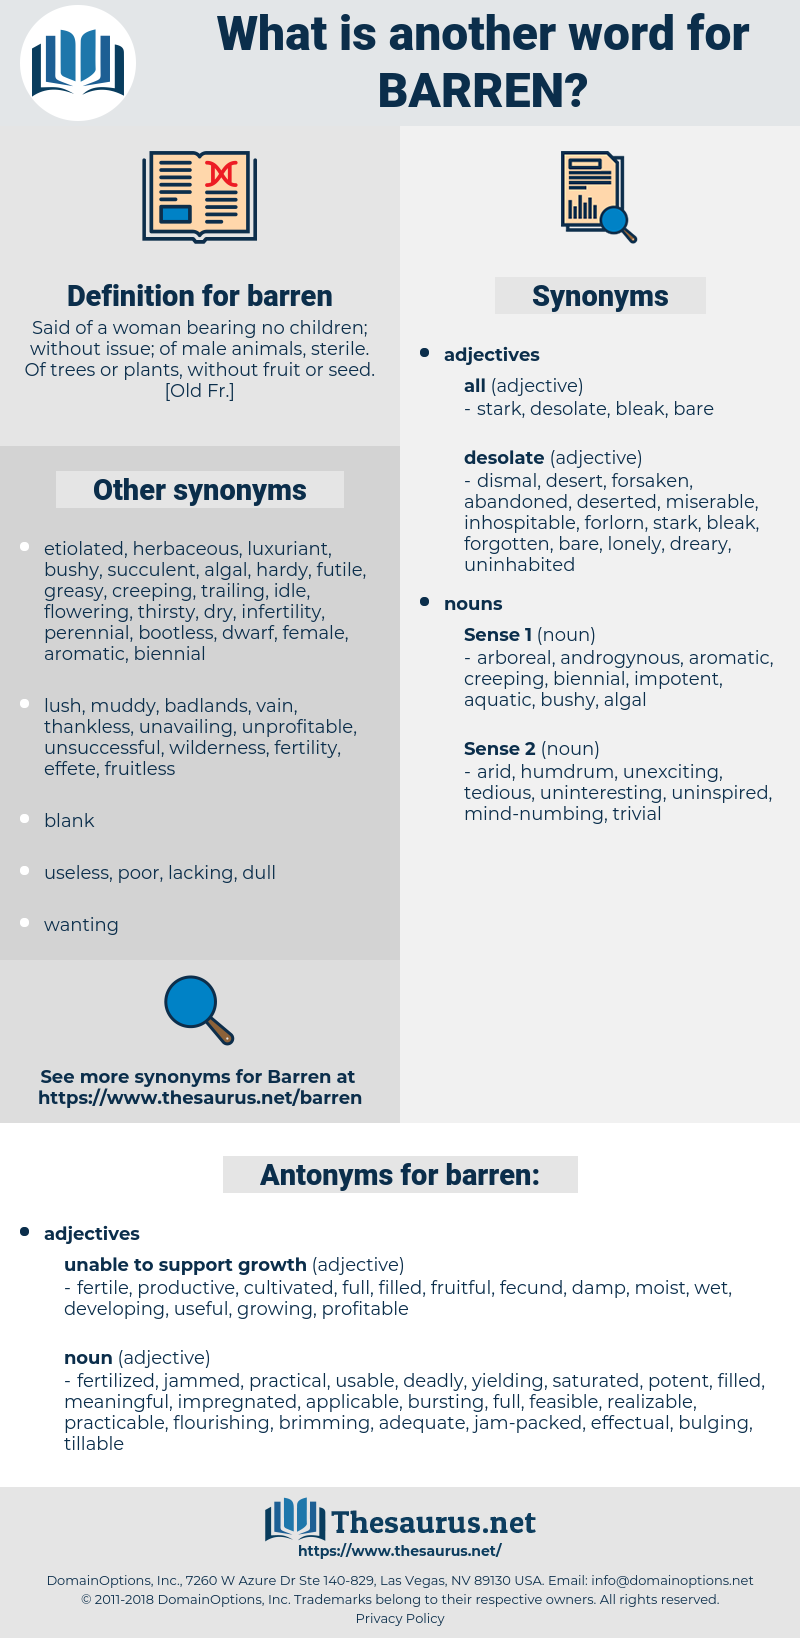 barren, synonym barren, another word for barren, words like barren, thesaurus barren